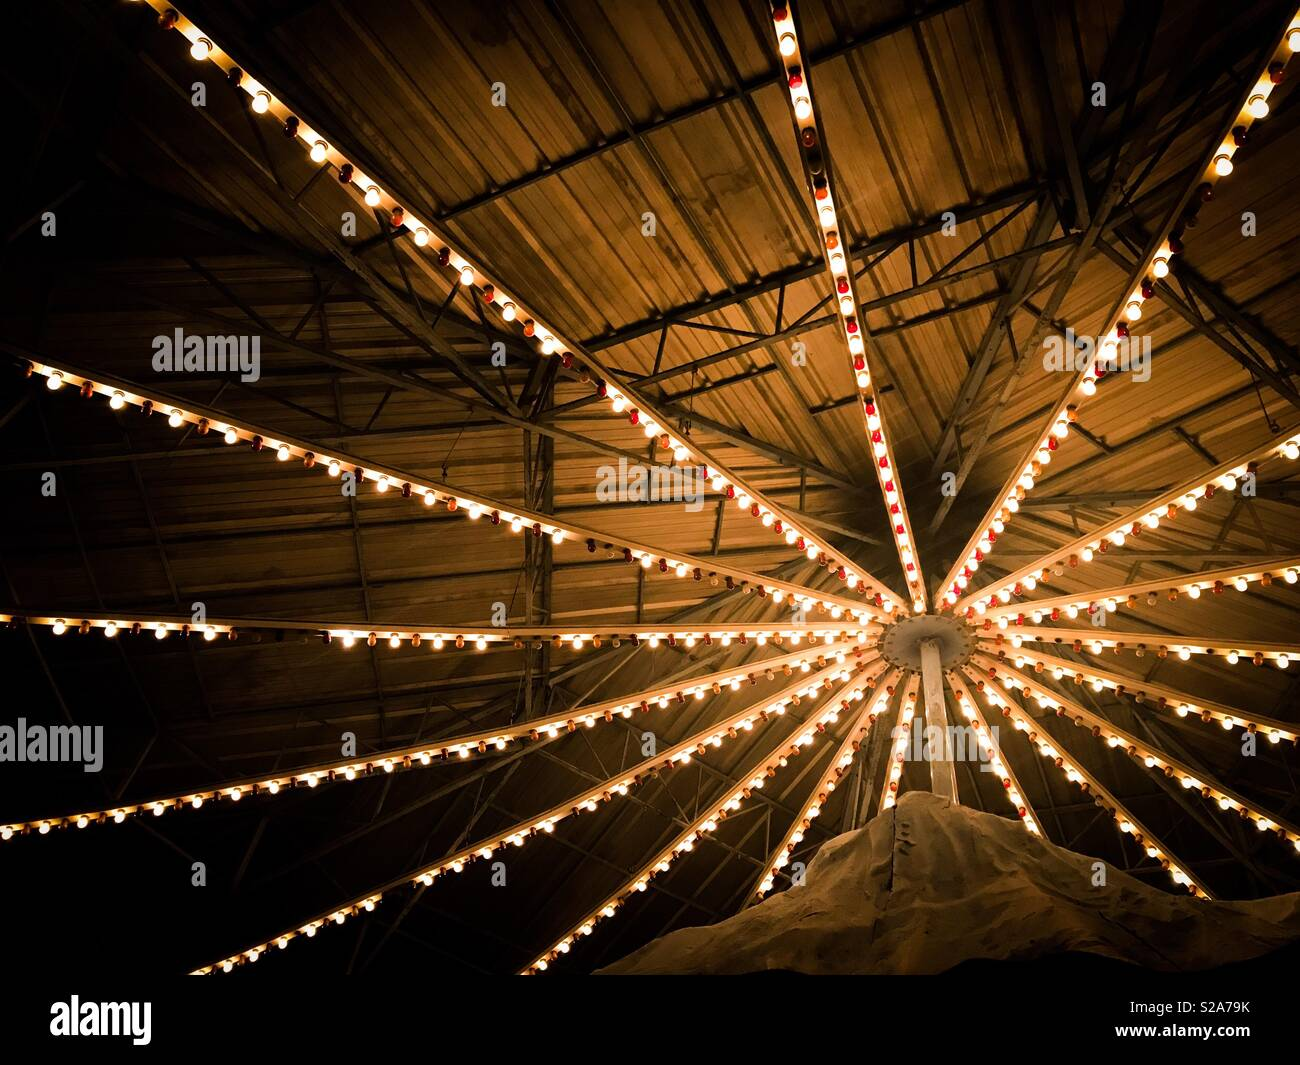 Lit ceiling at carnival - Stock Image